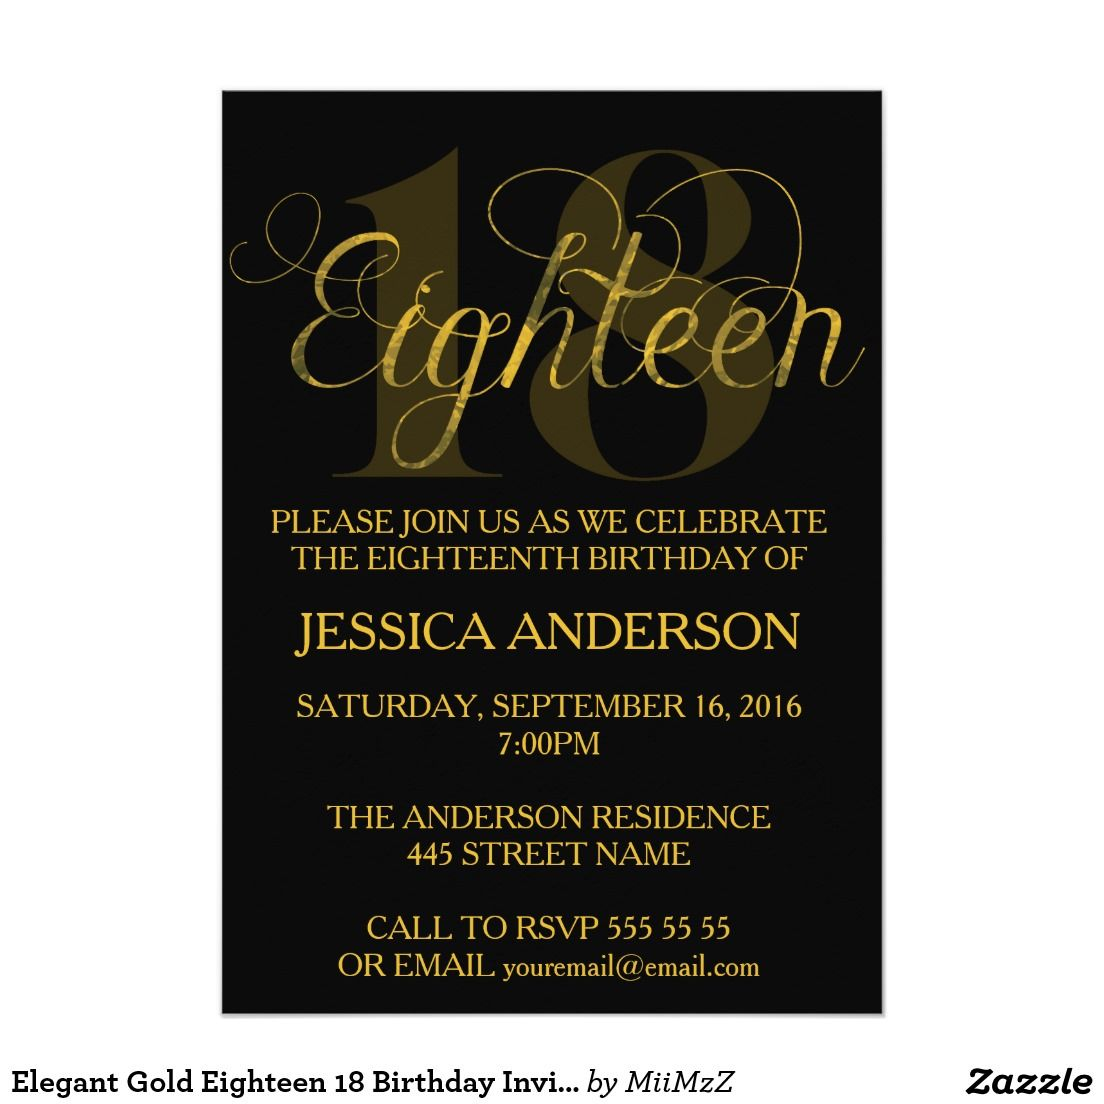 Elegant gold eighteen 18 birthday invitation gold 18 eighteen elegant gold eighteen 18 birthday invitation gold 18 eighteen birthday birthdays filmwisefo